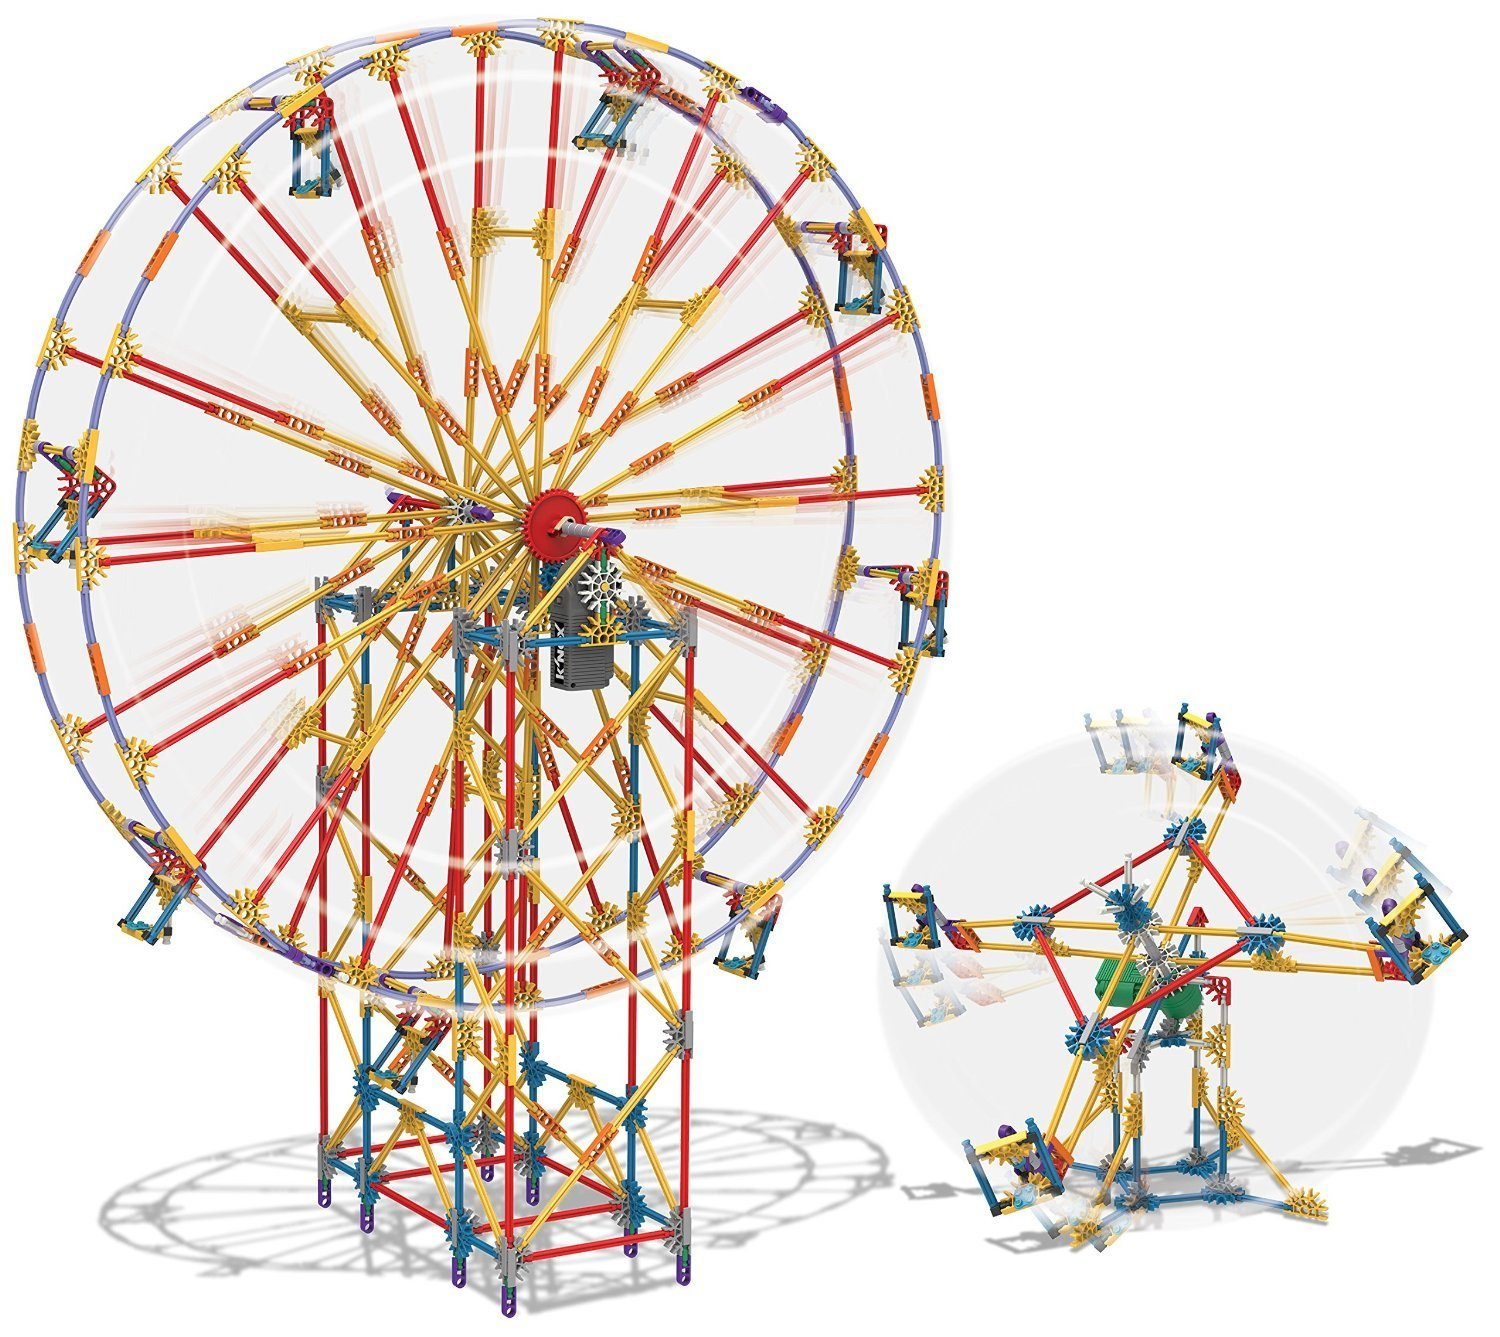 K'NEX 2-in-1 Ferris Wheel Building Set Amazon Exclusive Only $28.27 (Reg. $59.99)!